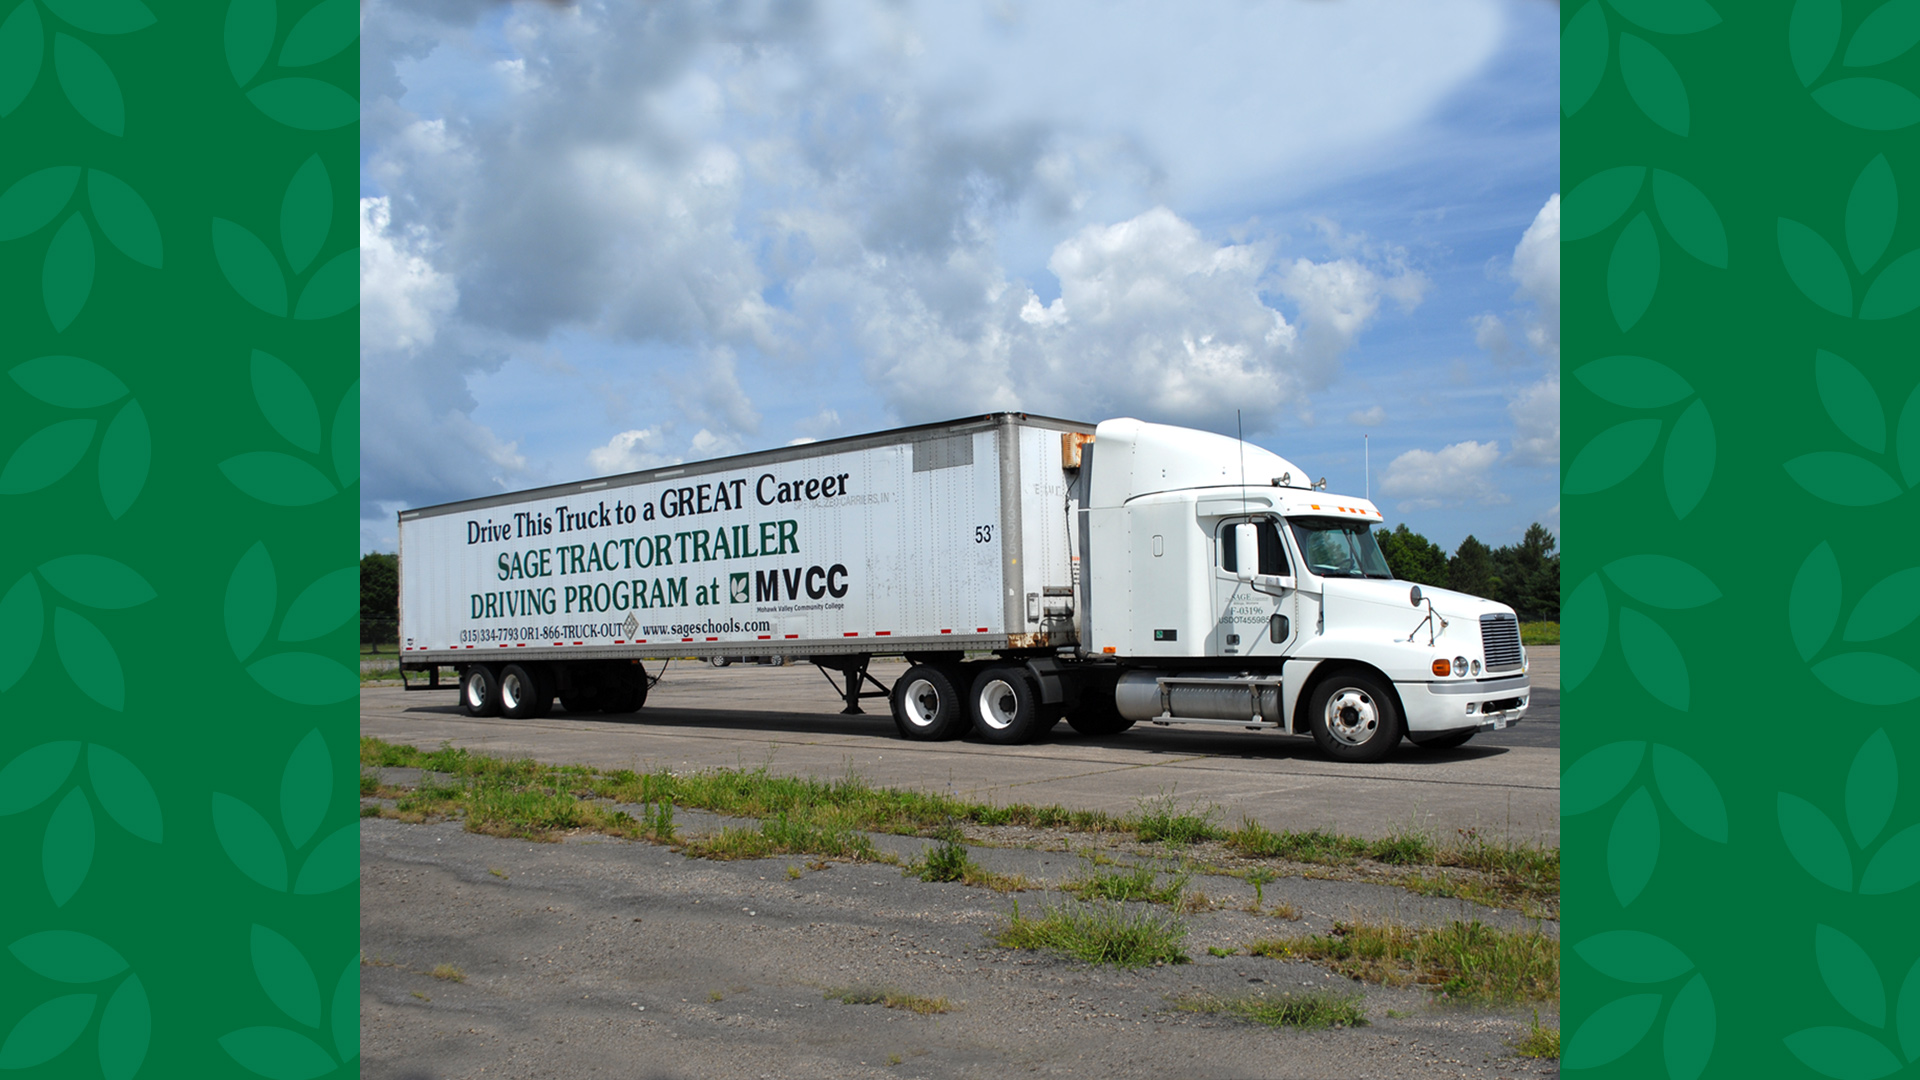 Sage Tractor Trailer Driving Program